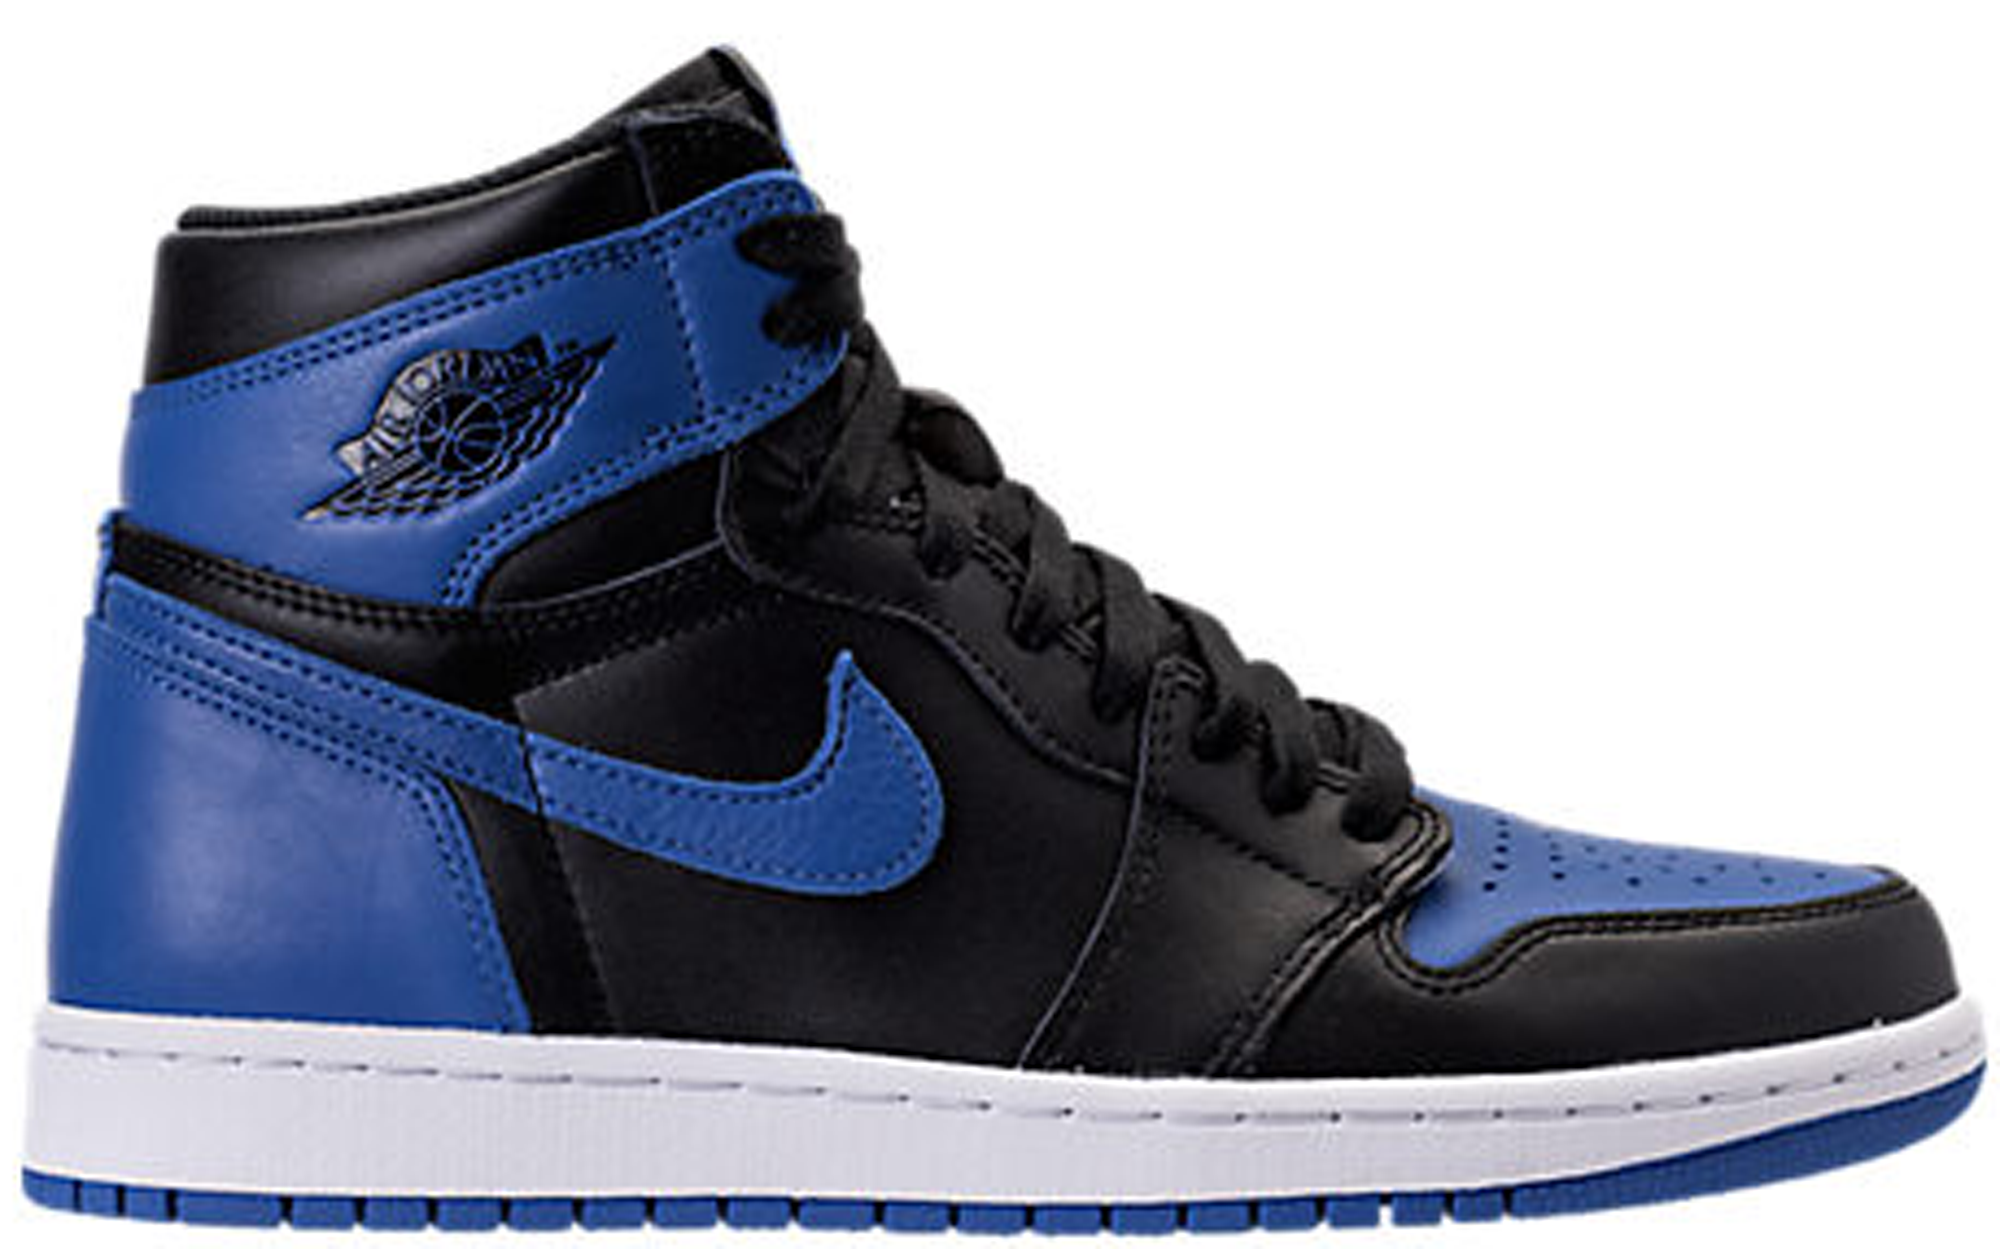 nike air jordan 1 retro high og royal blue